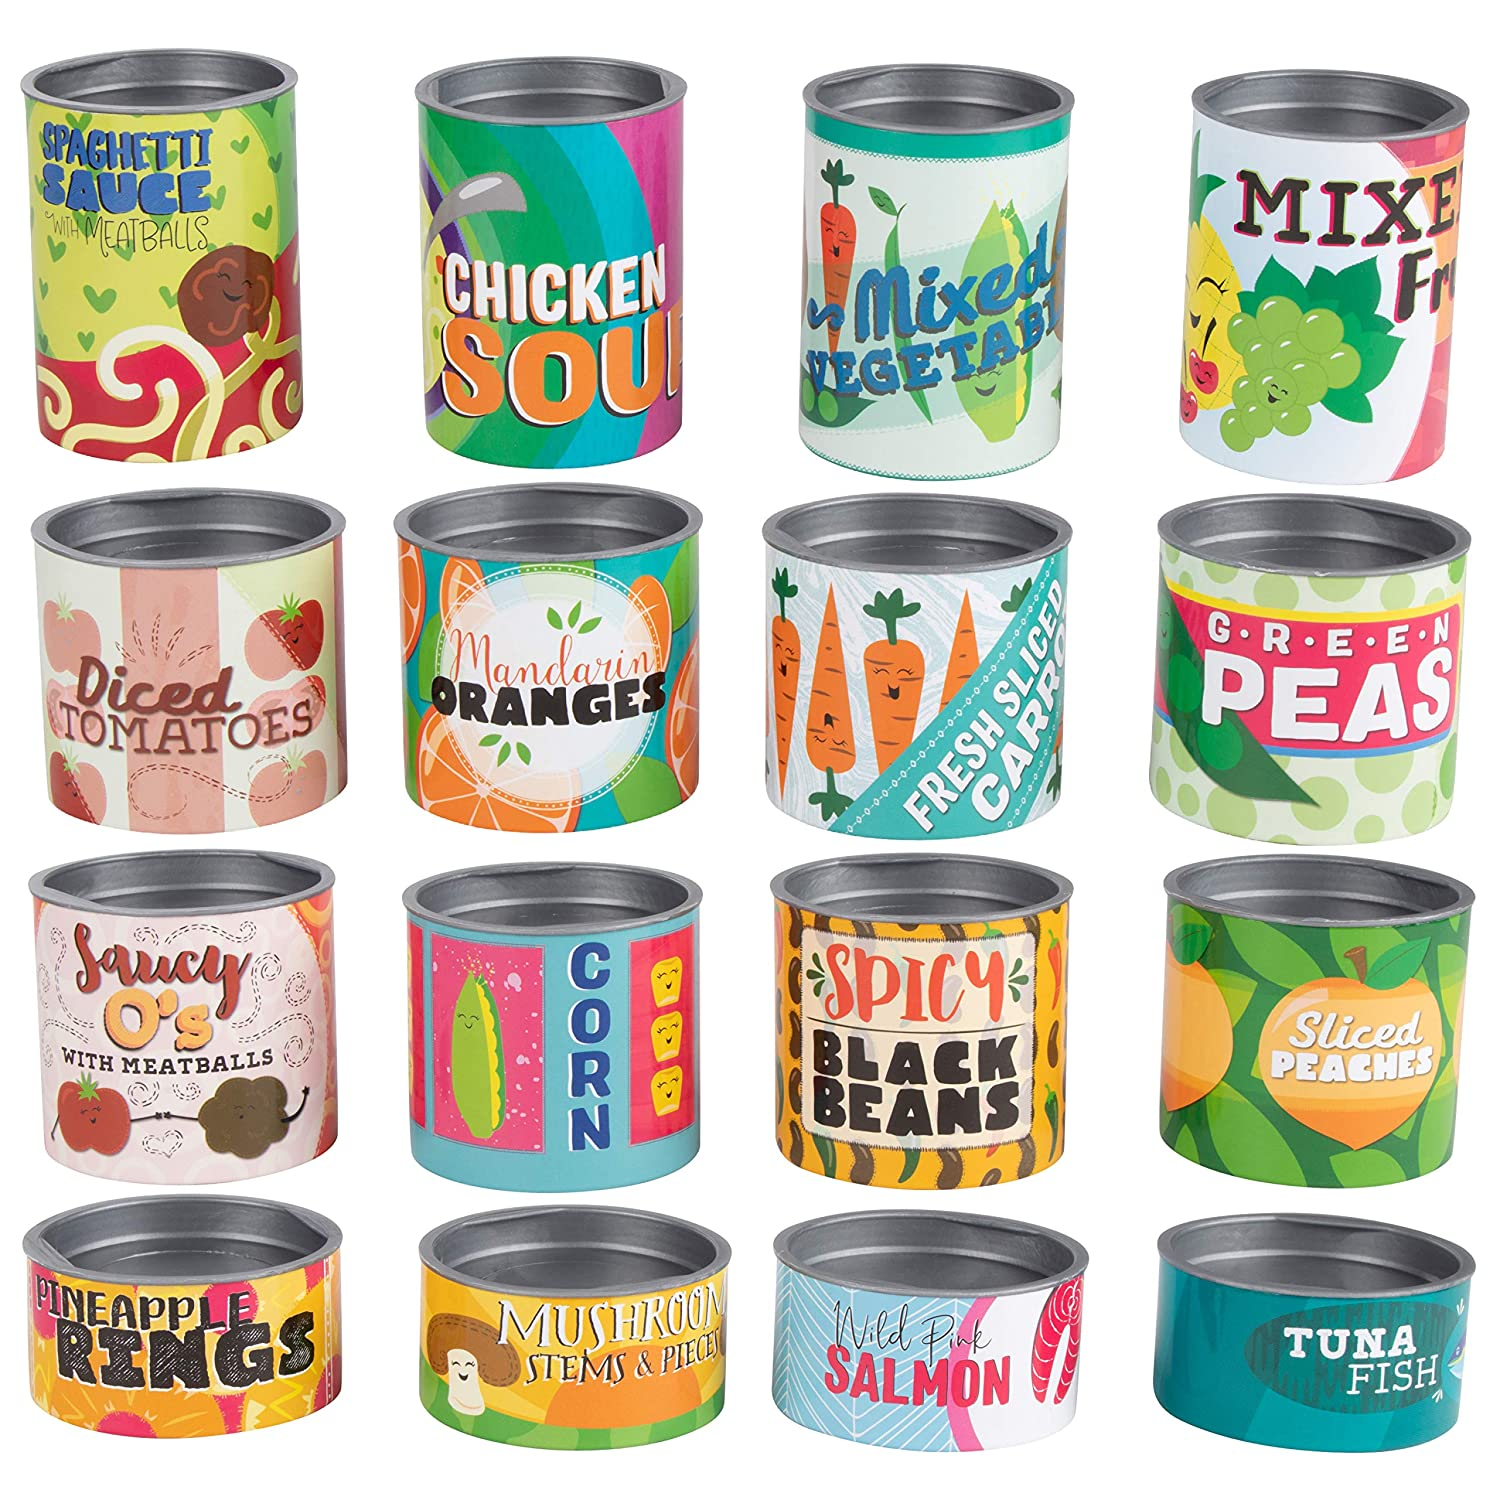 Cans Toys Grocery Store Play Set - 16-Piece Stackable Cardboard Cans with Removable Lids, Kids Pretend Play Food Canned Goods, Playhouse Kitchen Accessories for Boys and Girls, 16 Assorted Designs